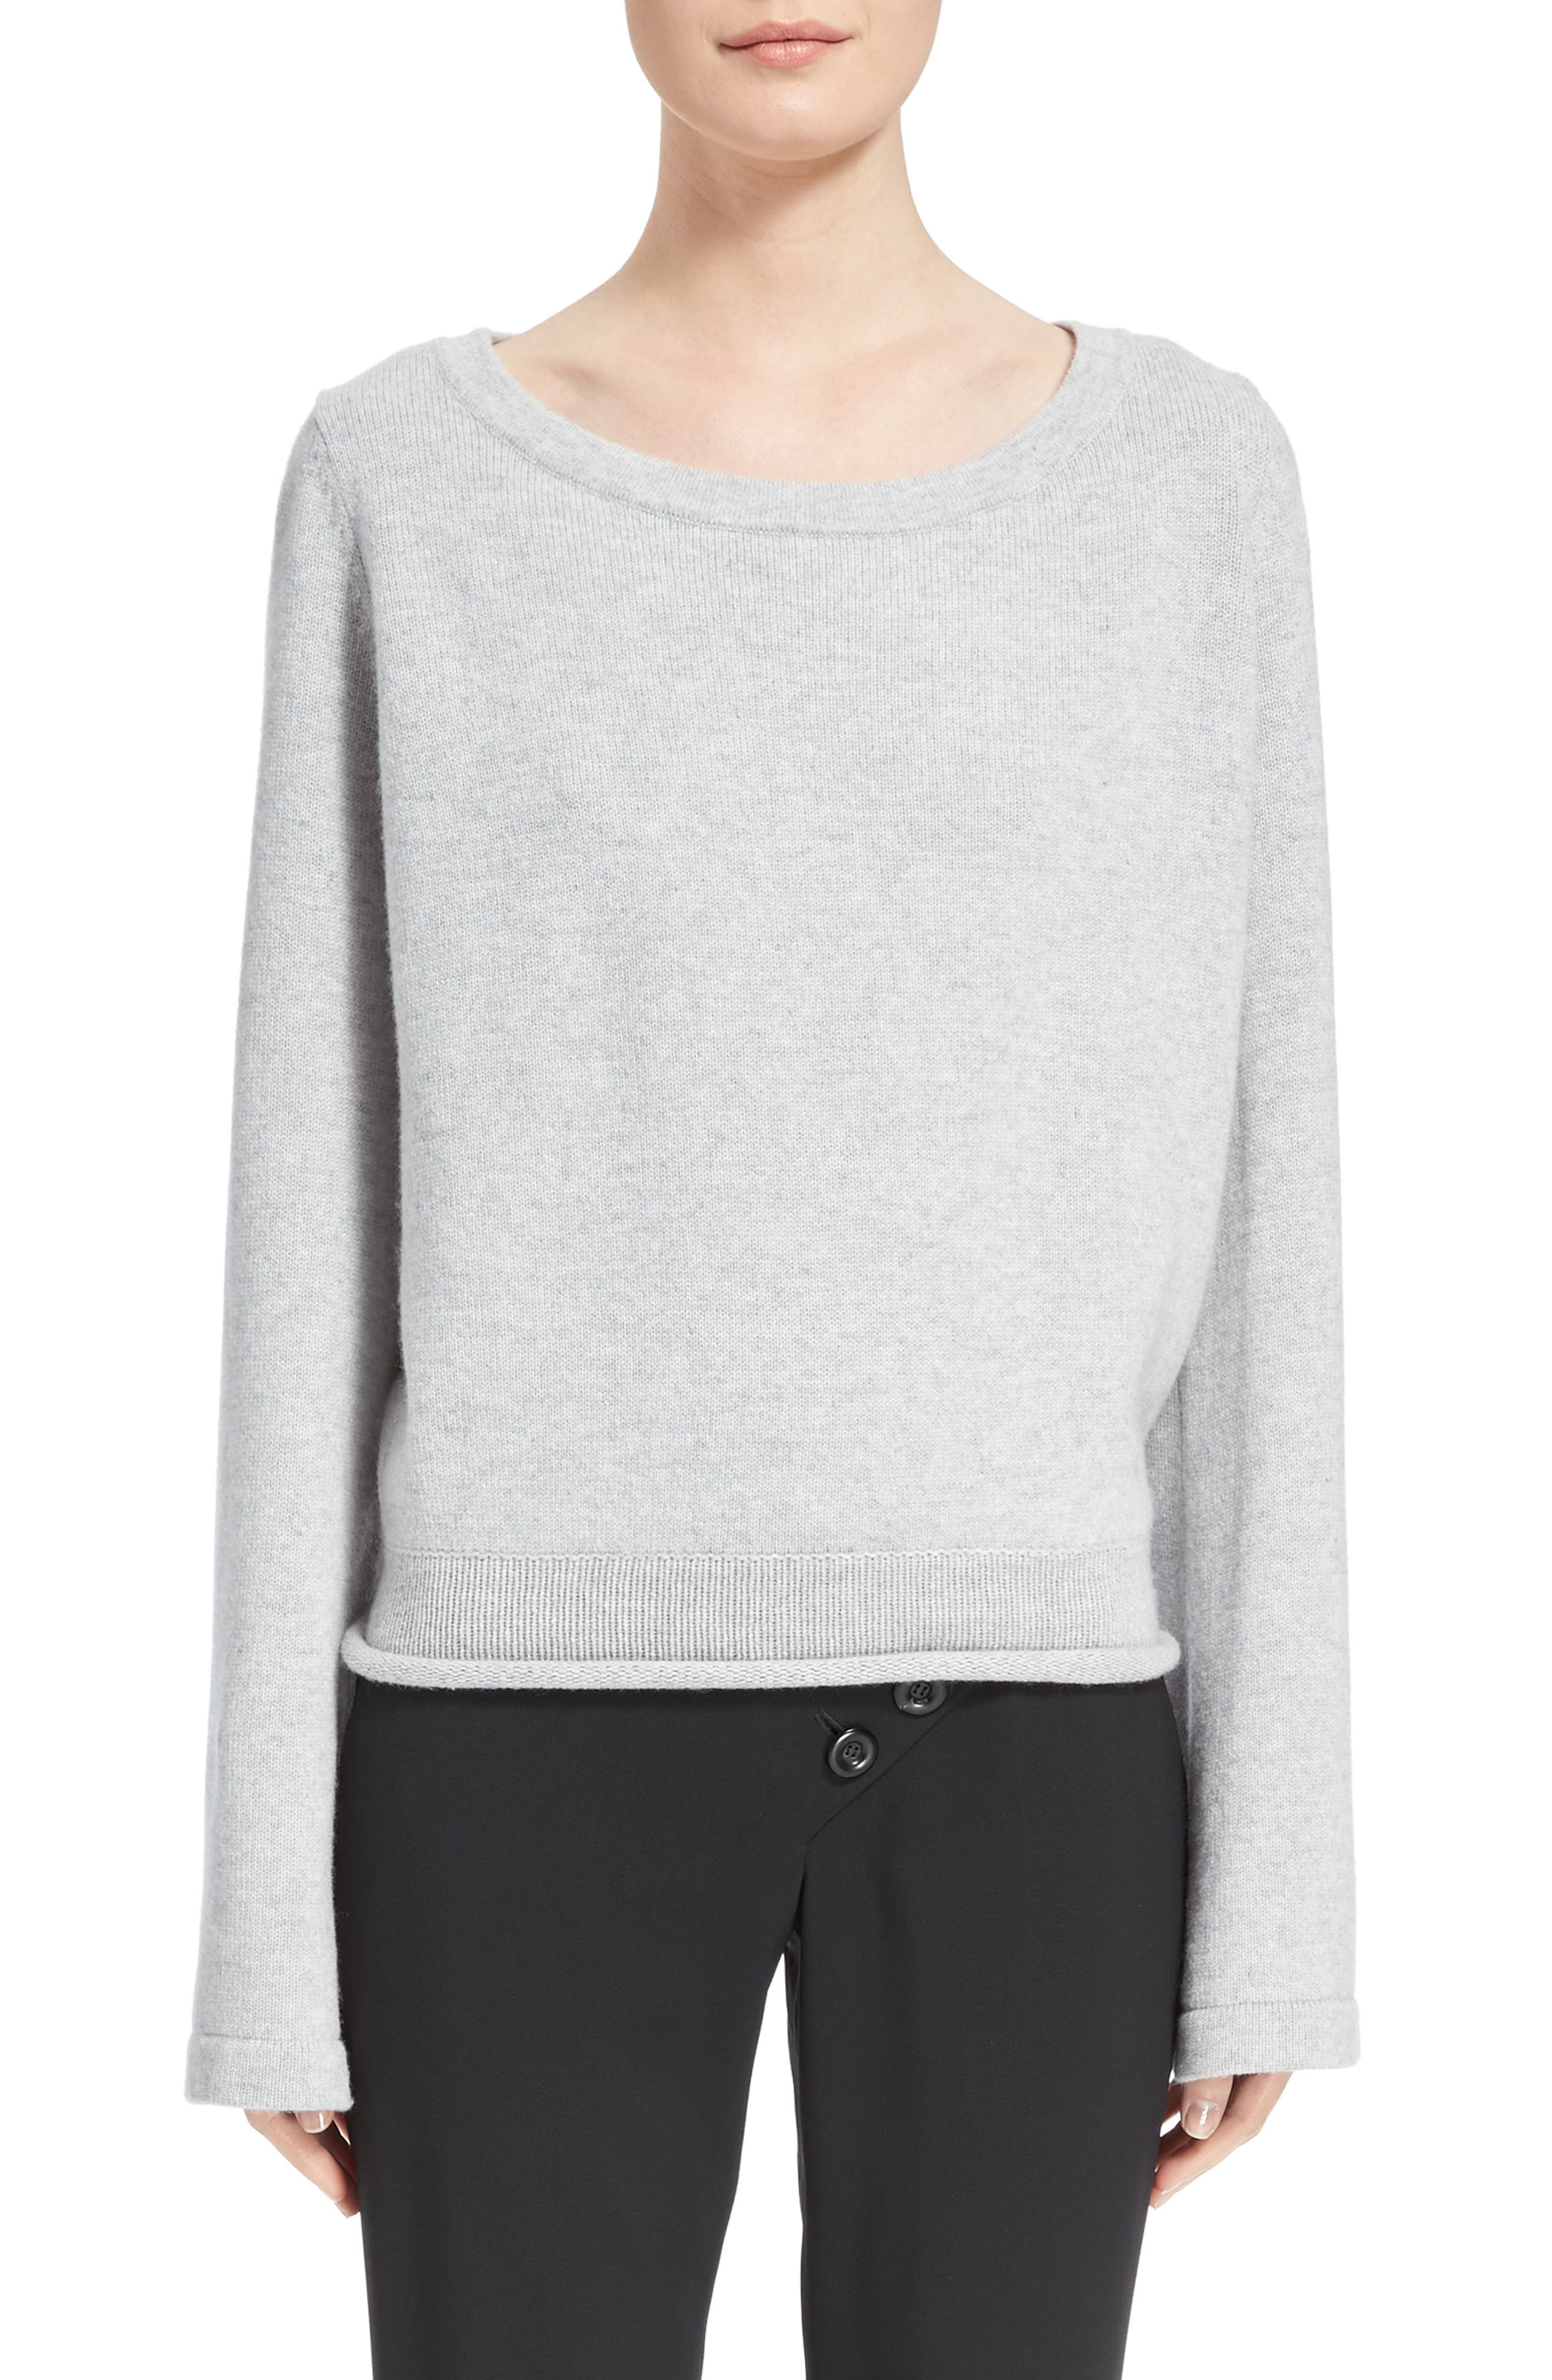 Iconic Cashmere Sweater,                         Main,                         color, Cozy Grey